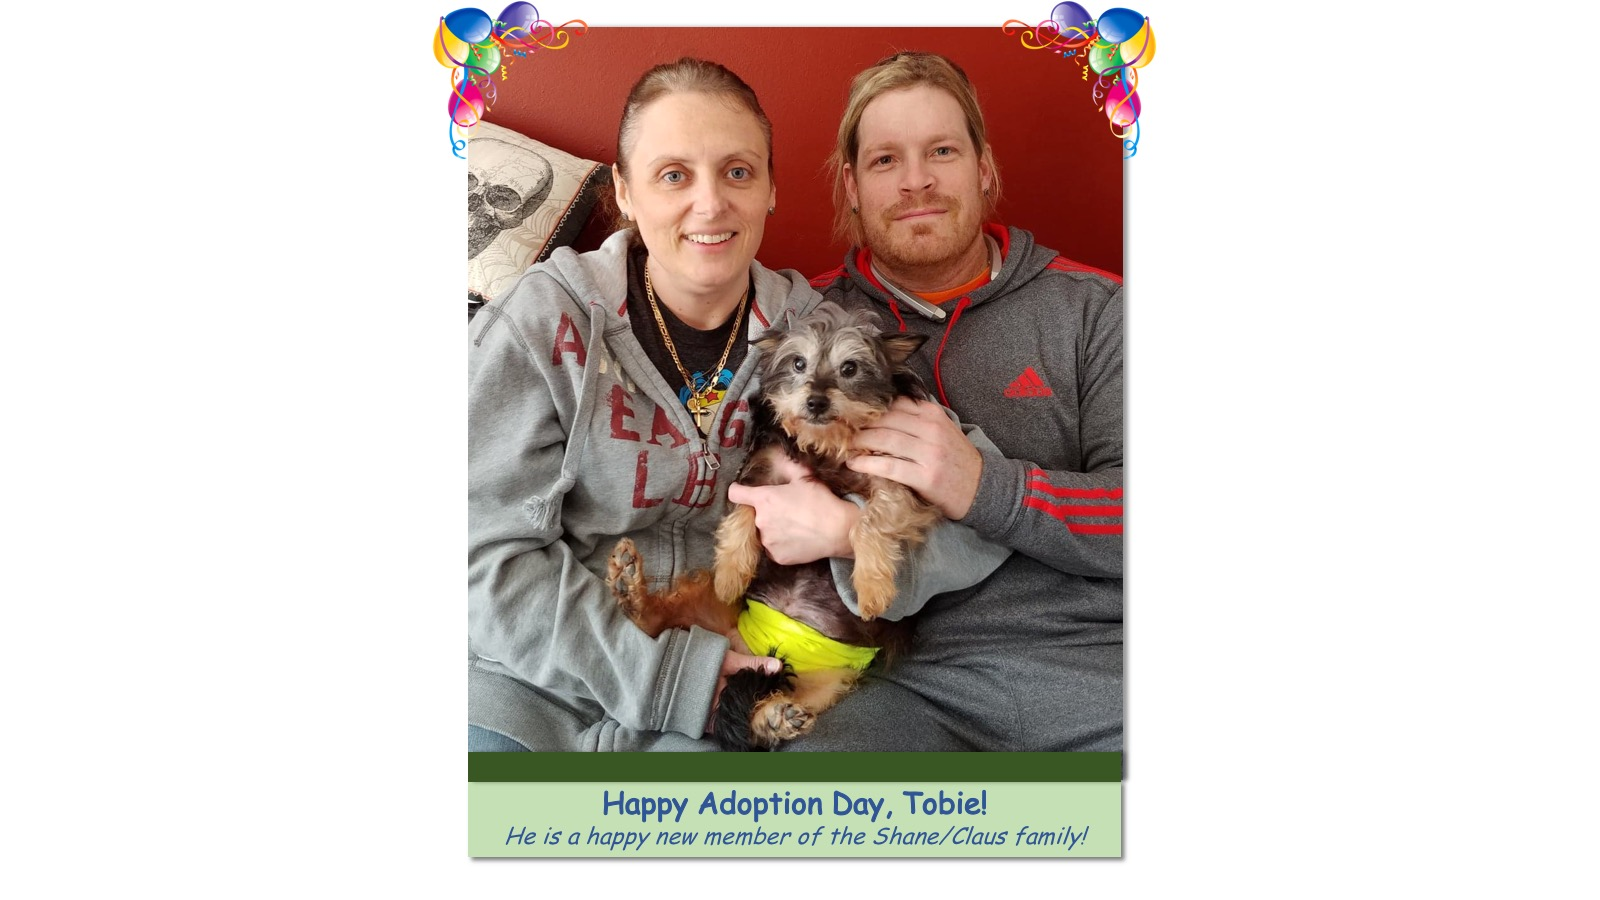 Tobie_Adoption_Photo_2018.jpg